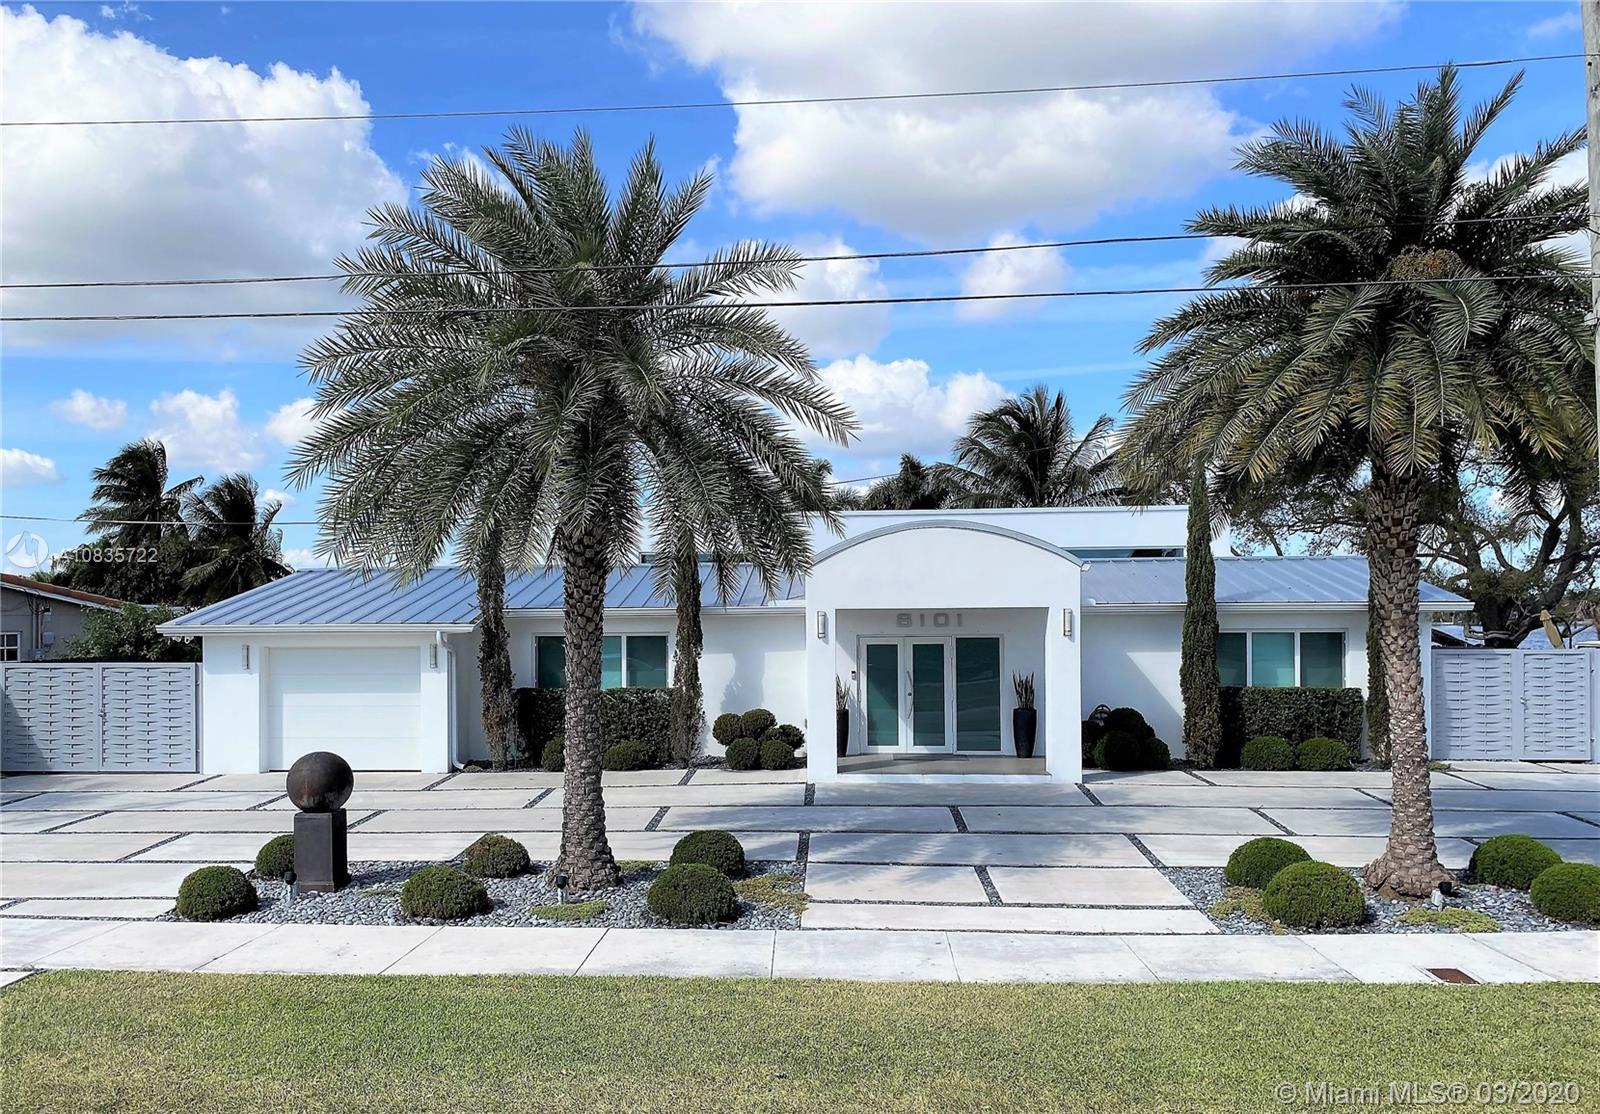 8101 NW 181st St  For Sale A10835722, FL